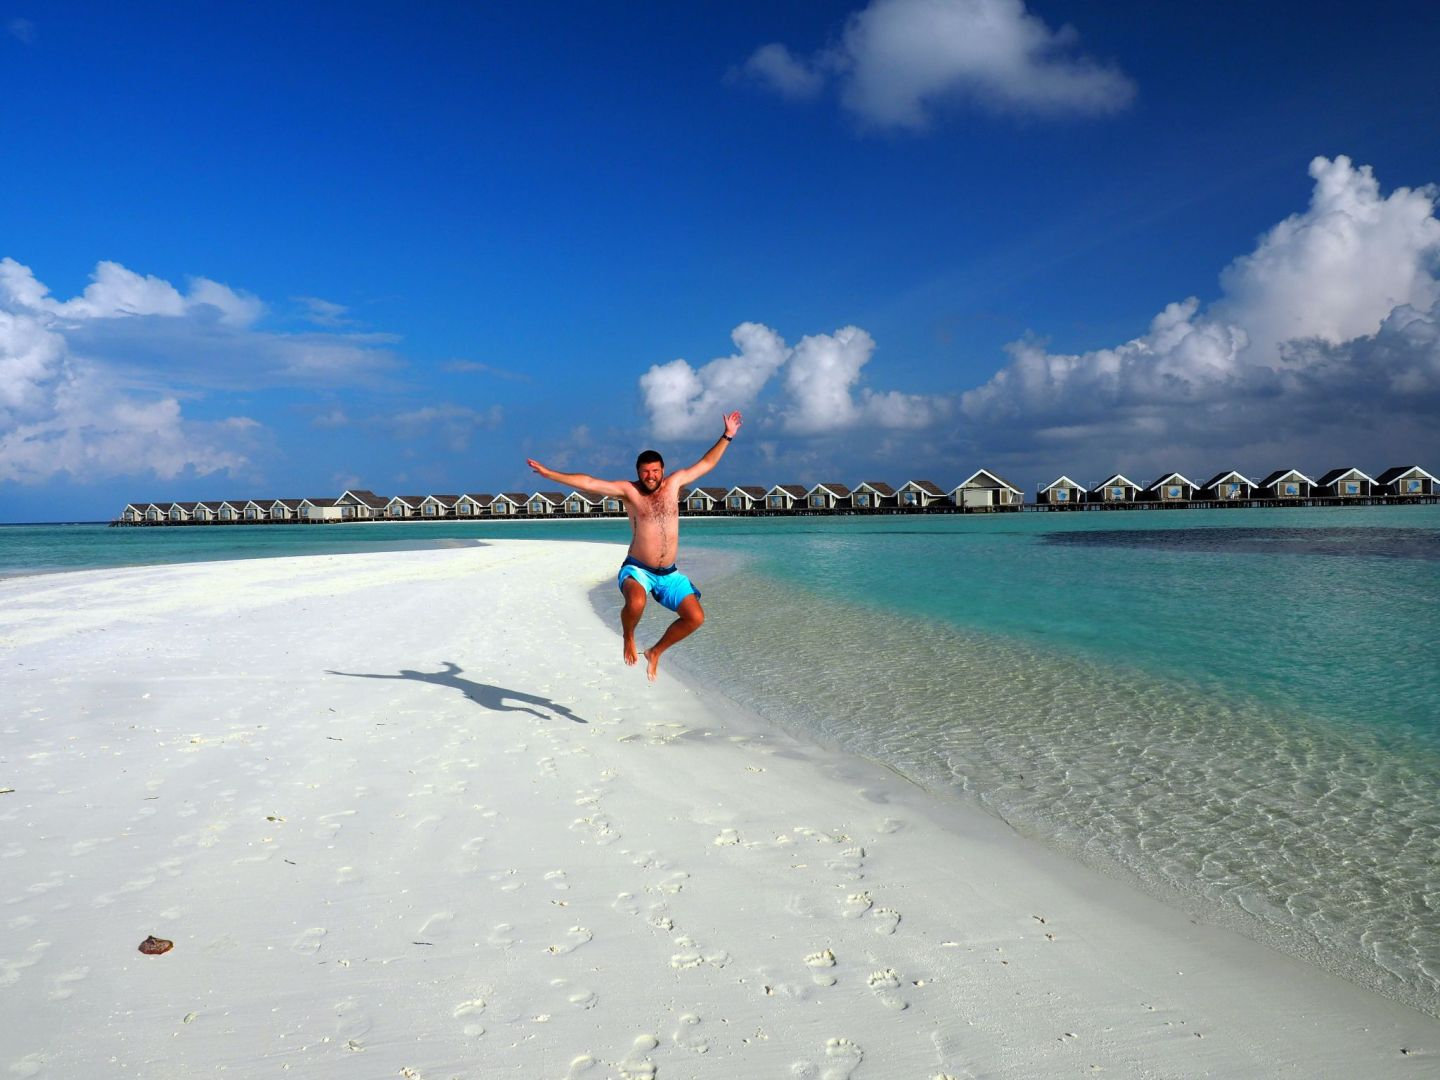 Dan jumping on sand bar in Maldives